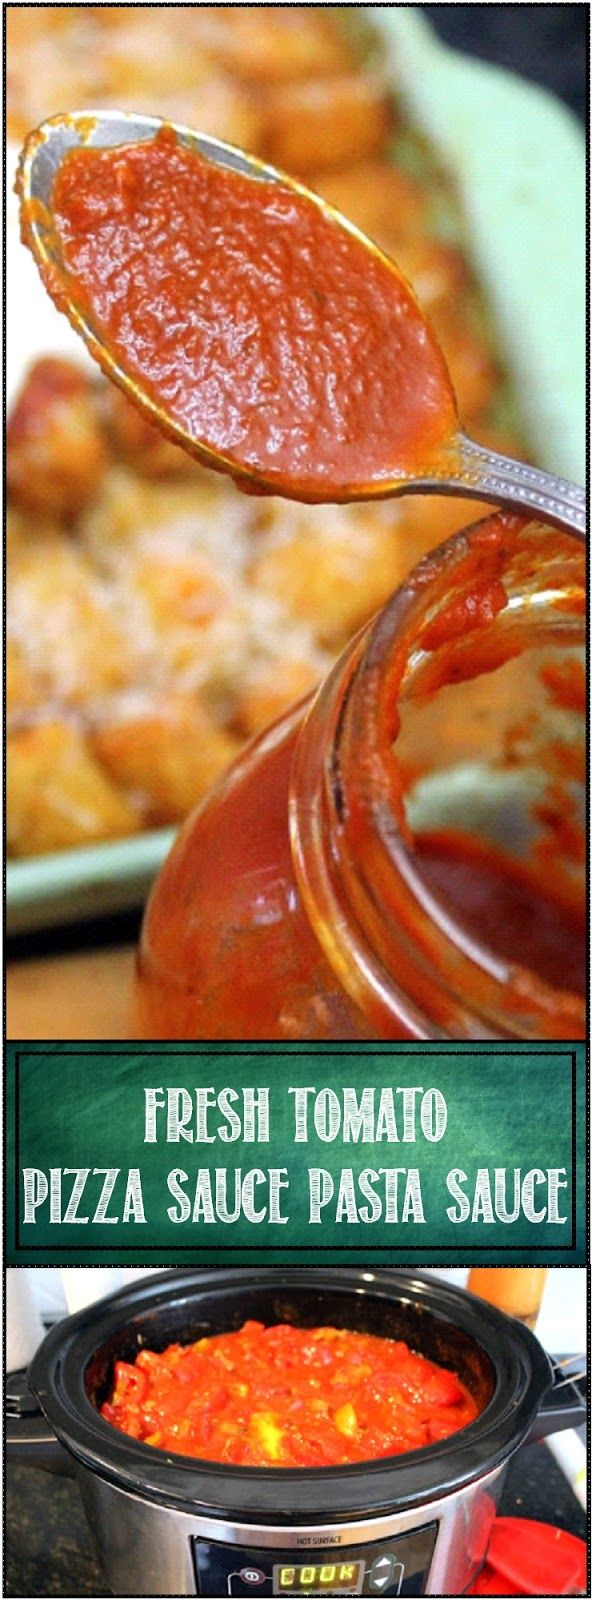 My love affair with the tomato continues... I have done a few posts on making Italian Gravy (Marinara Sauce). One I am very proud of...